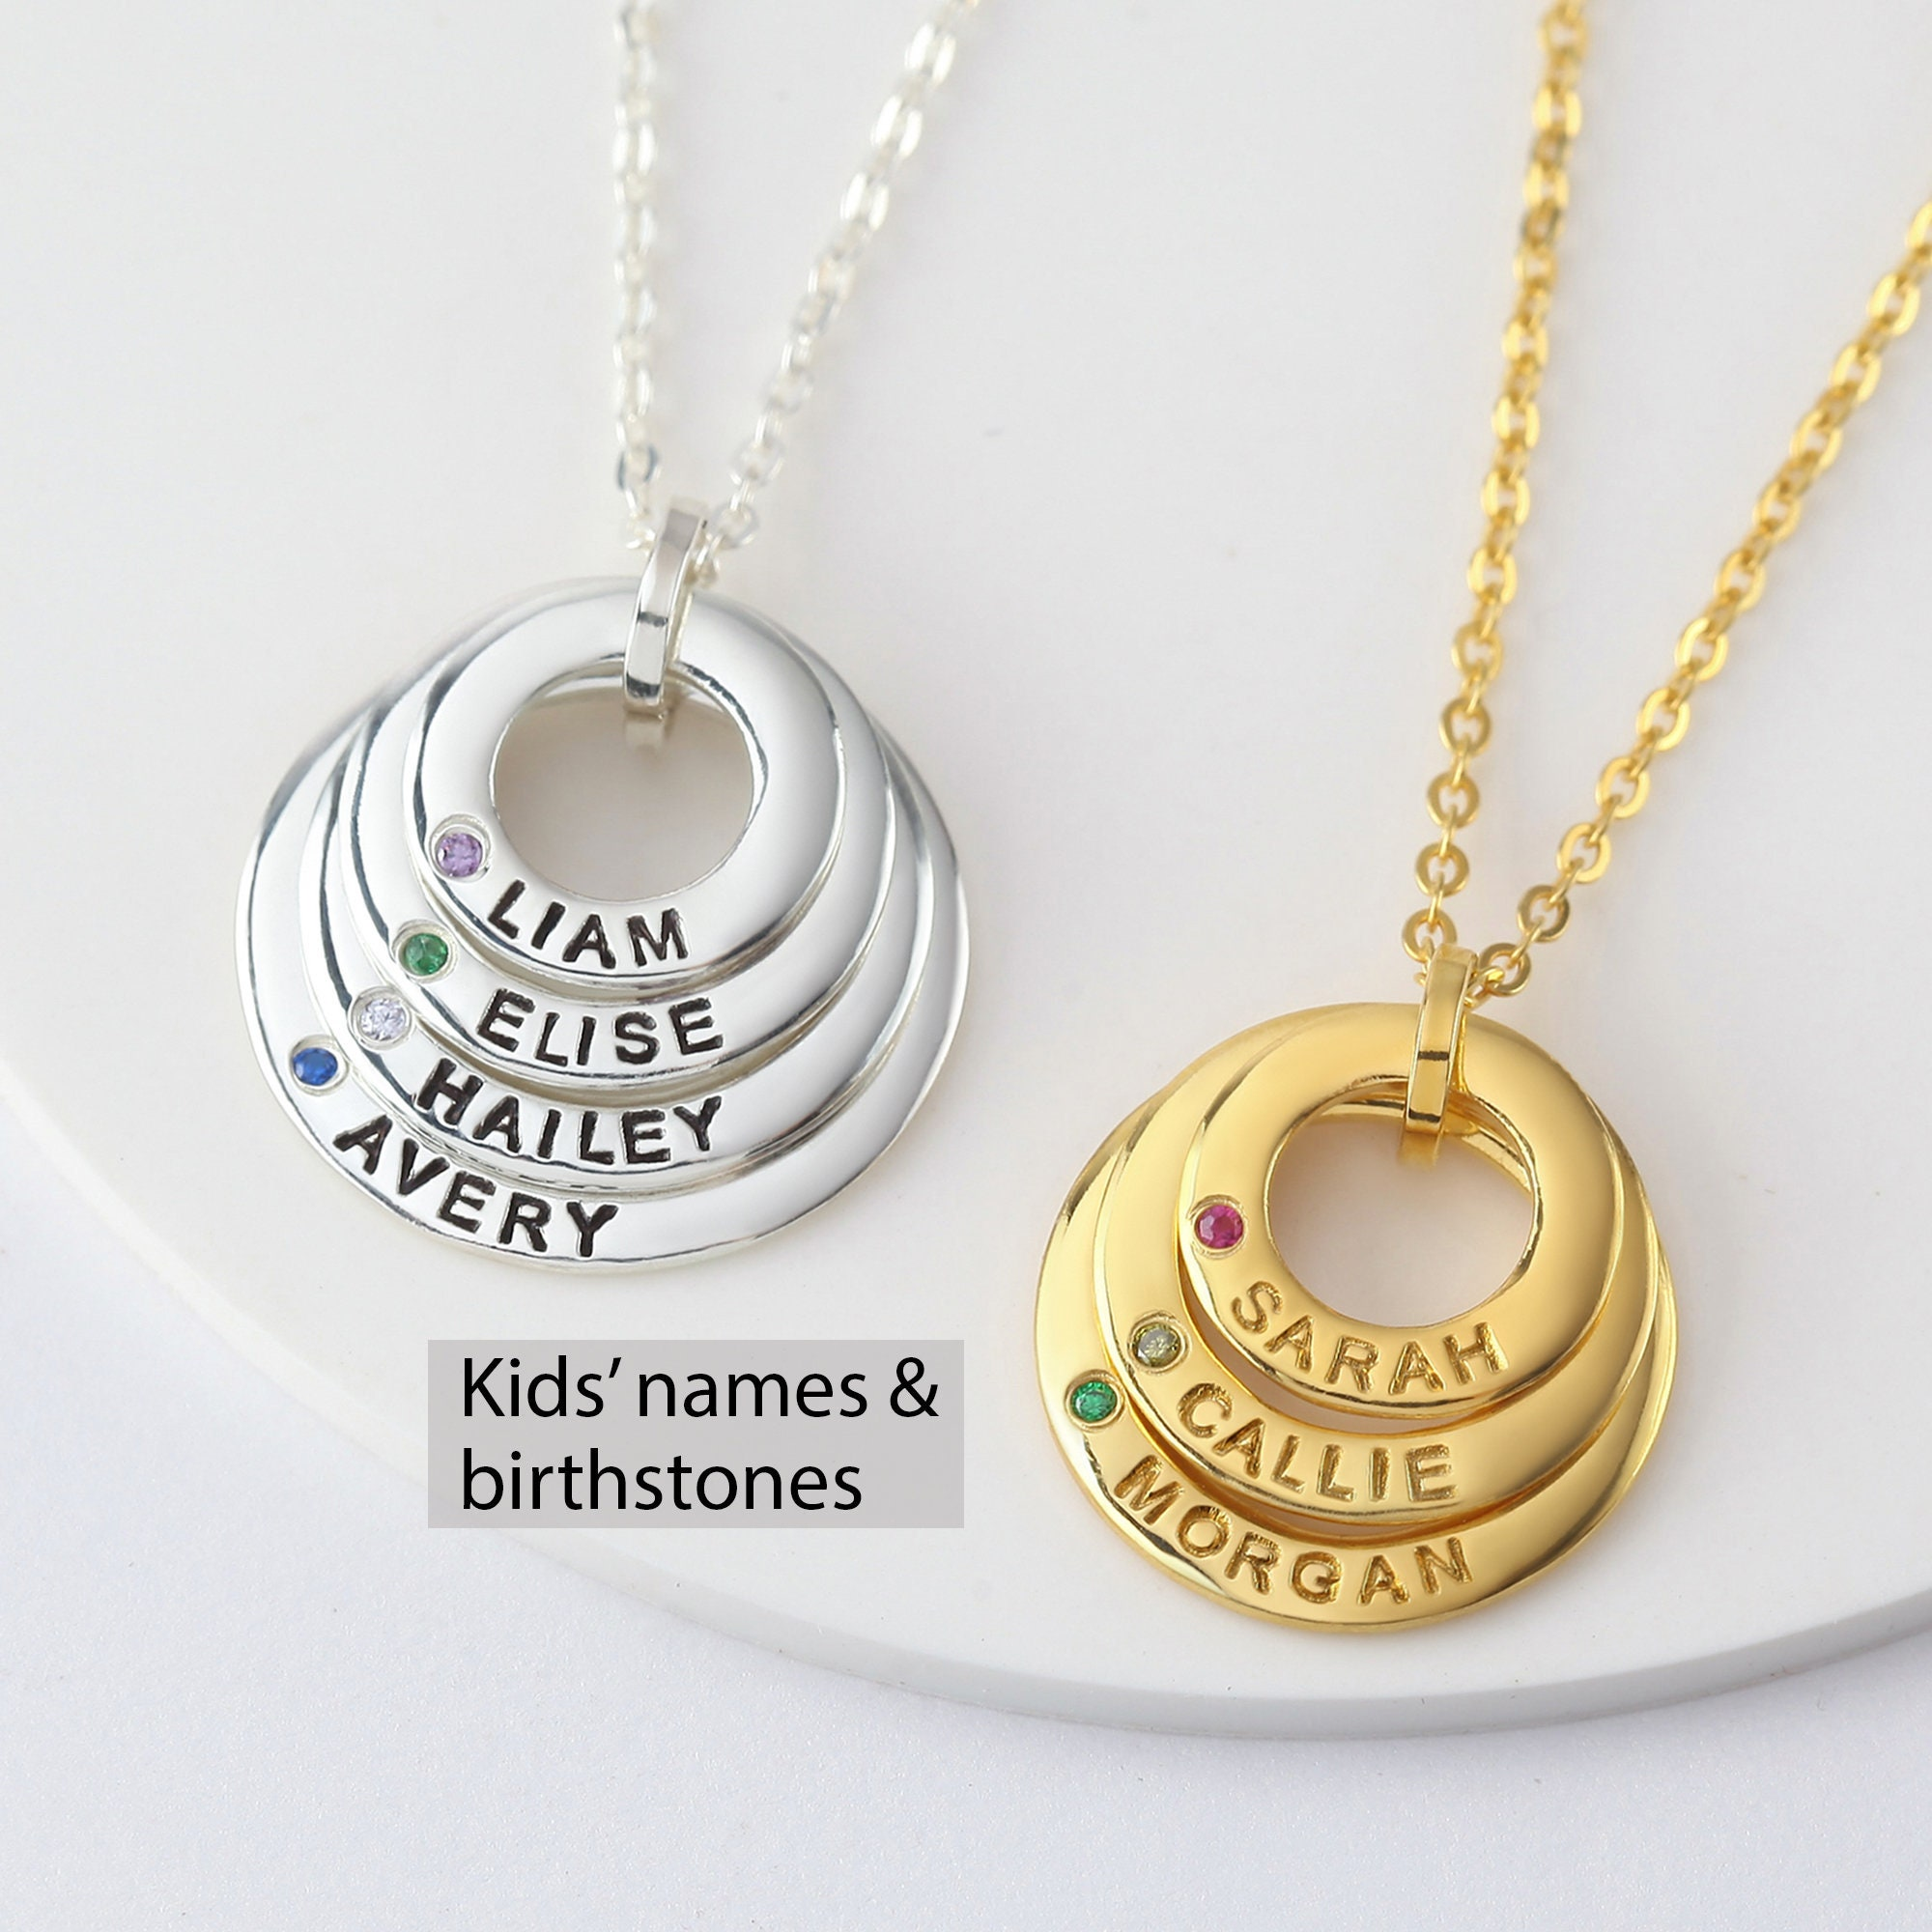 Family necklace Mom necklace Personalized Grandma gift Gift from daughter Jewelry for grandma with kids birthstone